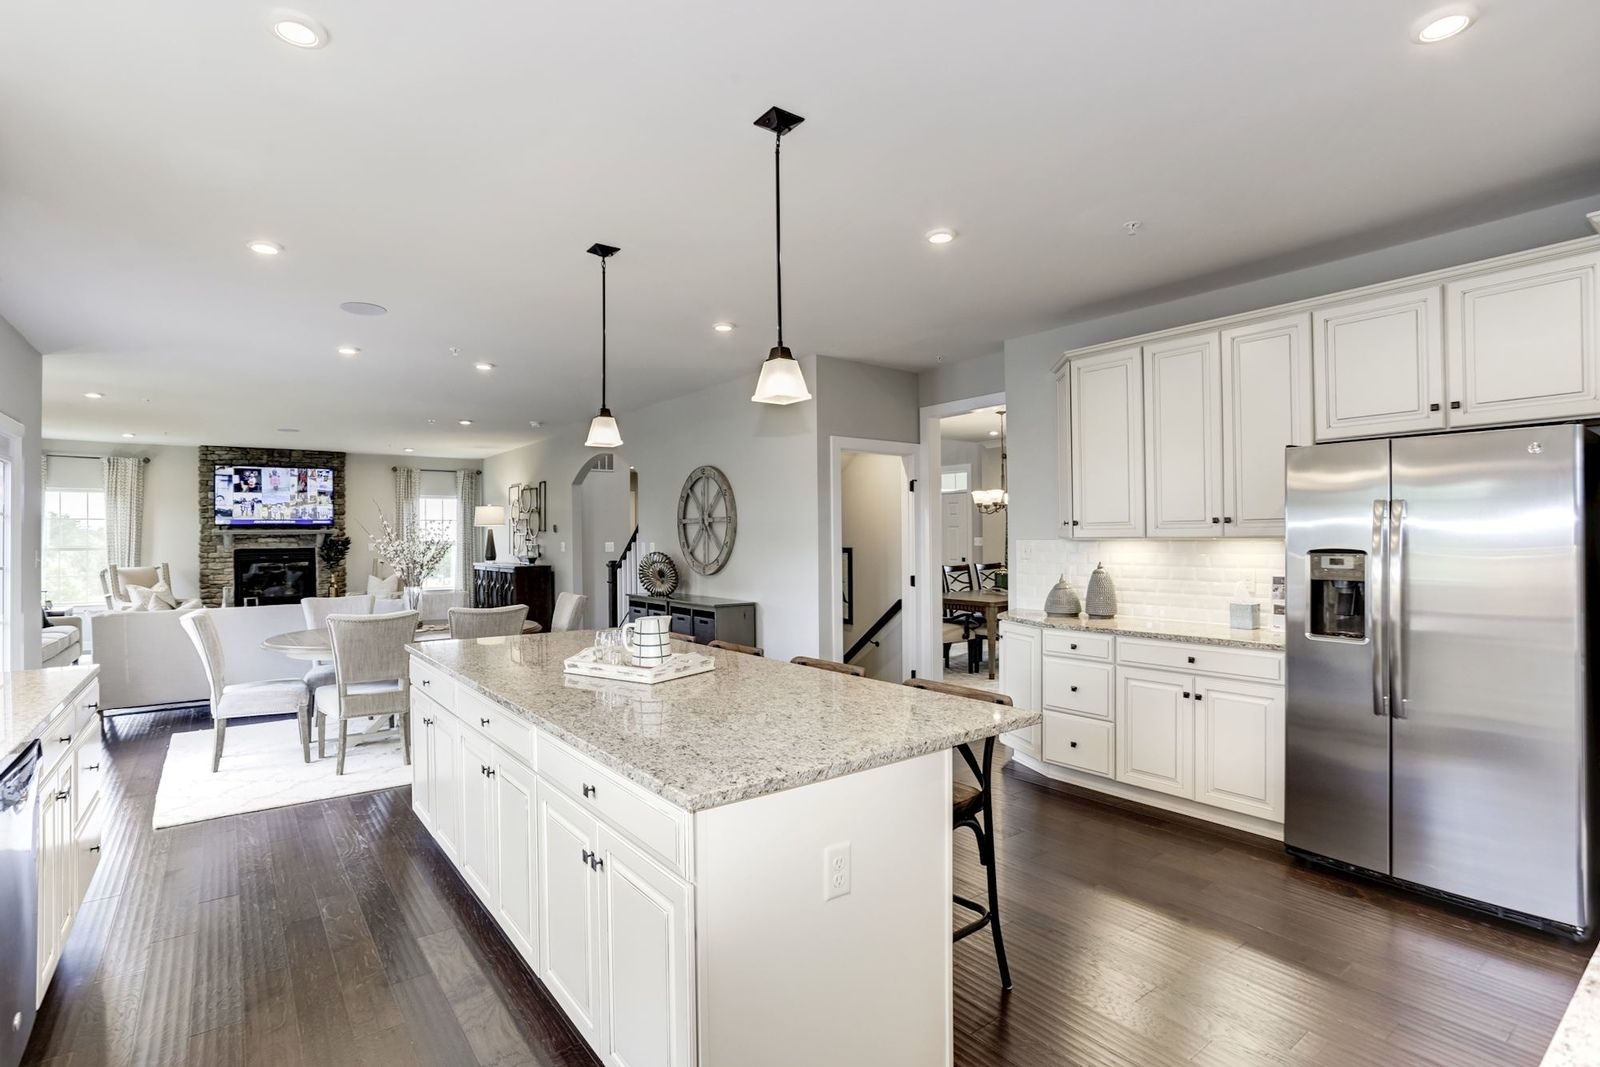 Kitchen featured in the Corsica By Ryan Homes in Washington, MD